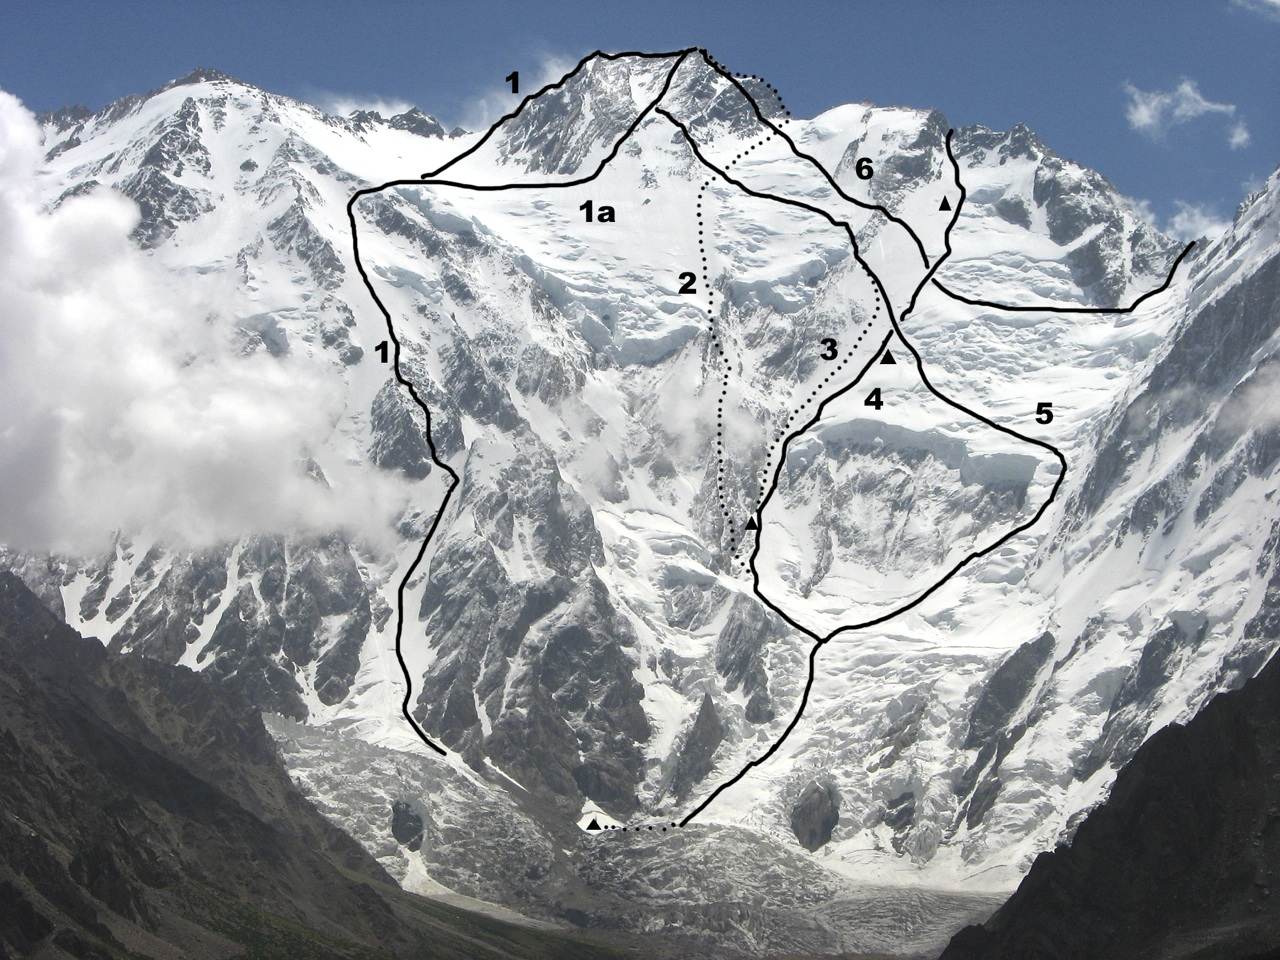 Diamir Face of Nanga Parbat. (1) Kinshofer Route (1962, original line). (1a) Line generally followed today. (2) Messner brothers 1970 descent route via Mummery Rib. (3) Messner 1978 descent route. (4) Slovenian 2011 ascent to upper southwest ridge. Bivouac sites marked. (5) Messner 1978 ascent route. (6) Upper section of 1976 Schell route (climbs Rupal Flank to Mazeno Col). There have been several variants to Schell route, e.g. in 1981 by Ronald Naar, who followed a higher traverse line to reach snowy section of ridge up and left from Slovenian high point.